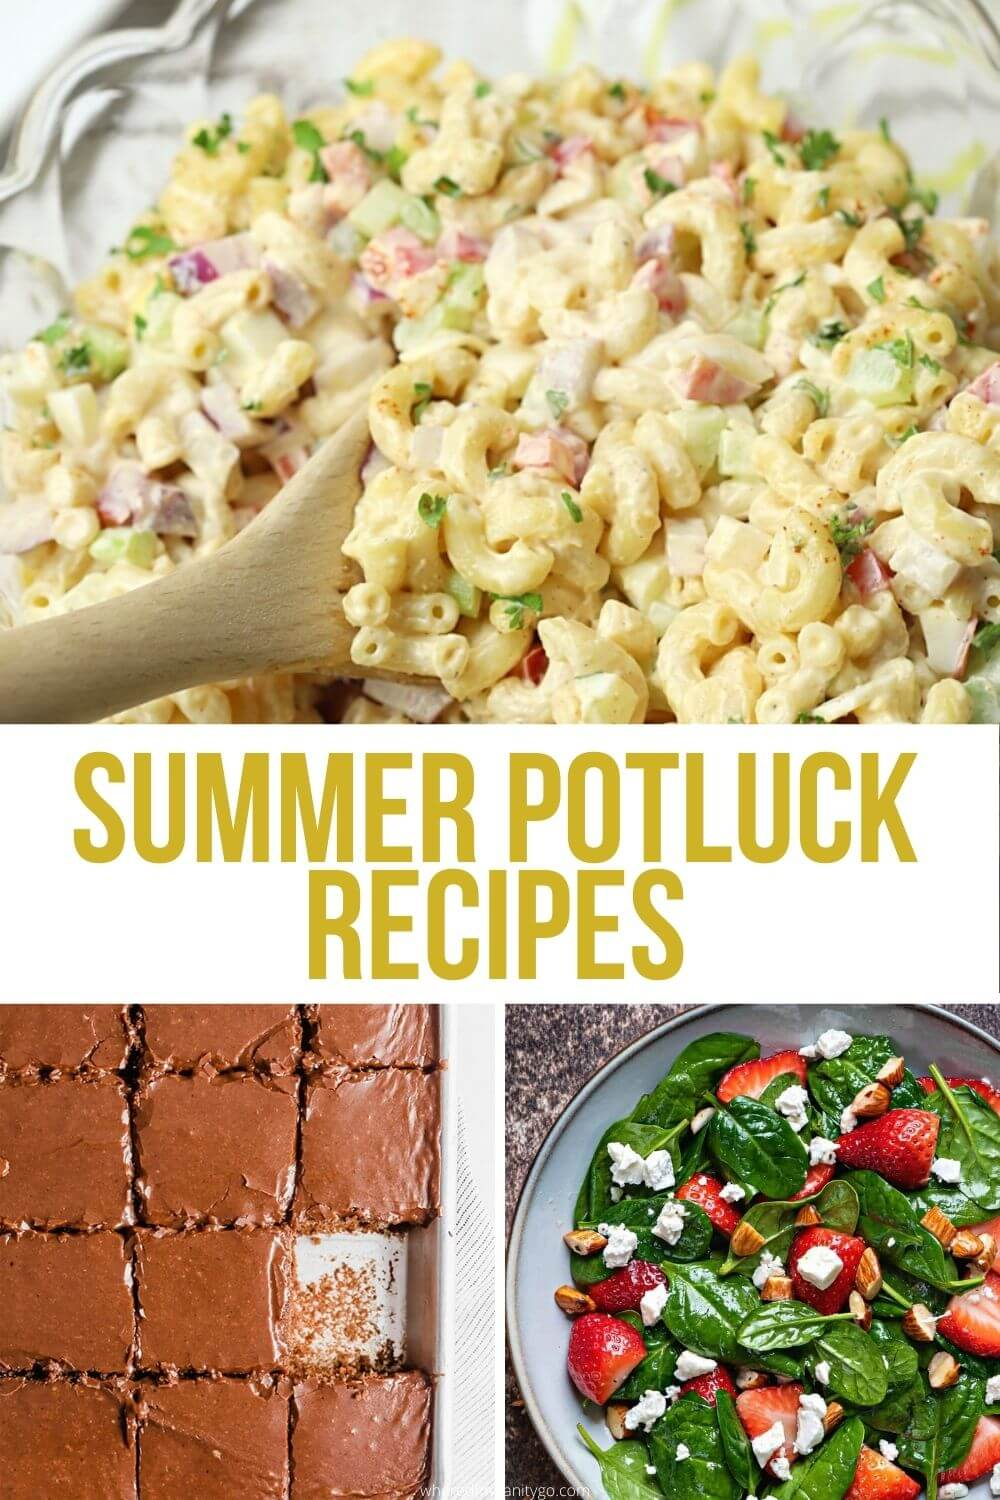 What to Bring to a Potluck